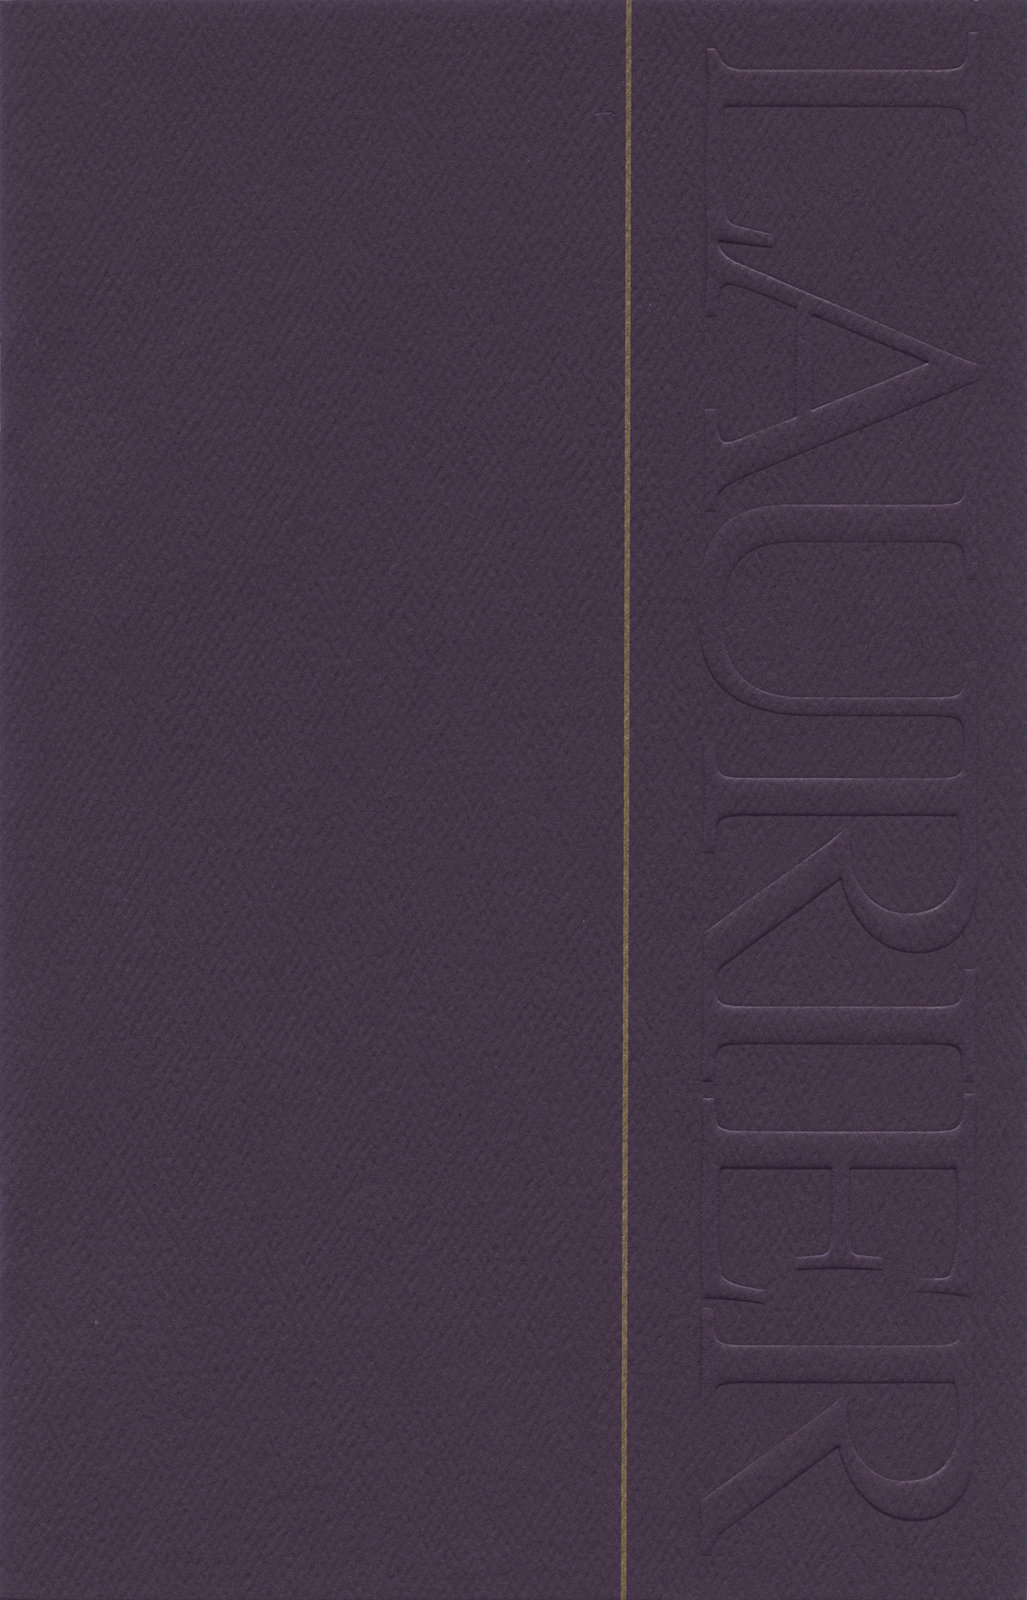 Wilfrid Laurier University spring convocation invitation, 2004